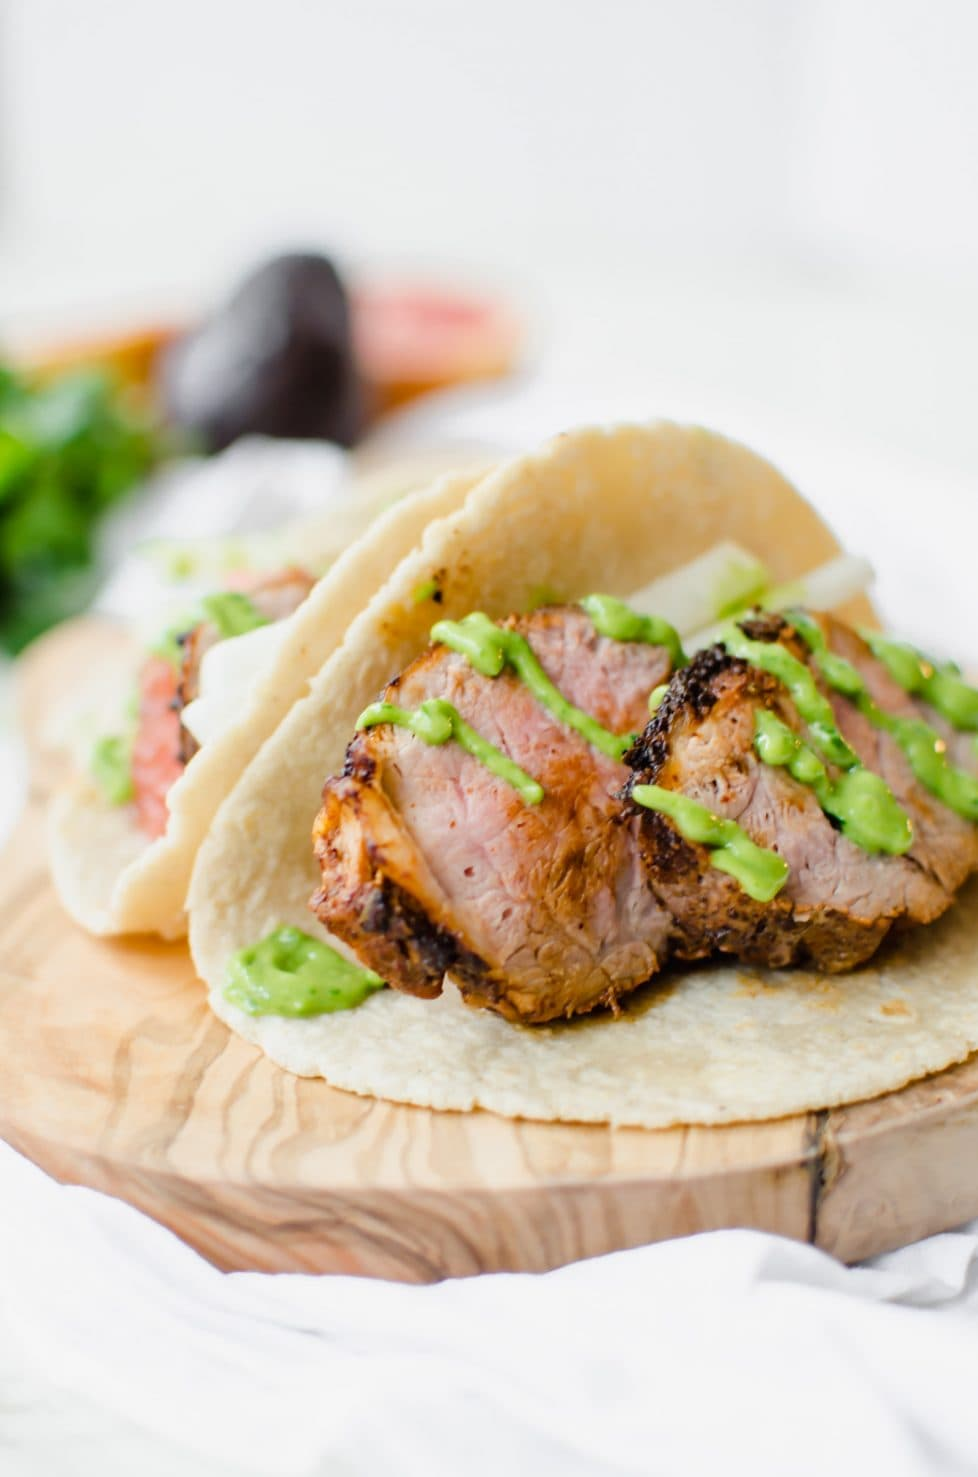 This recipe for Pork Tenderloin Tacos with Creamy Avocado Sauce is perfect for #tacotuesday and is an easy, healthy pork recipe you can roast in the oven.